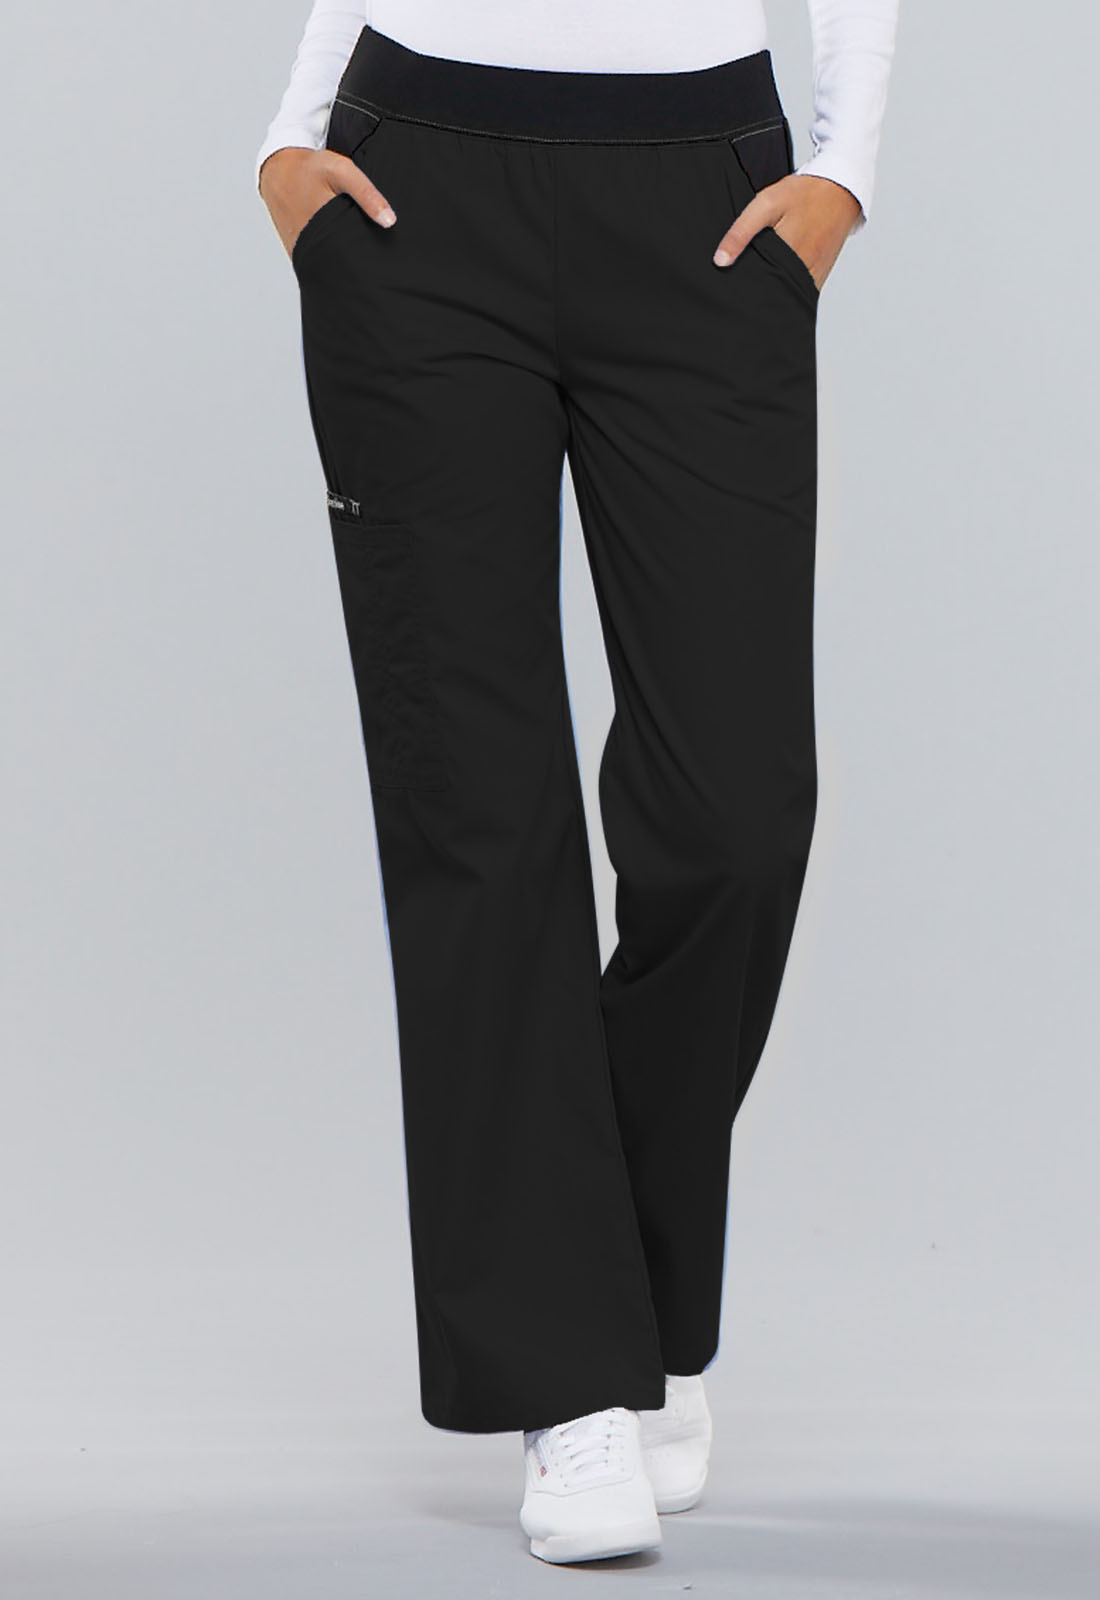 0c8f4550a4e Flexibles Mid Rise Knit Waist Pull-On Pant in Black 1031-BLKB from ...